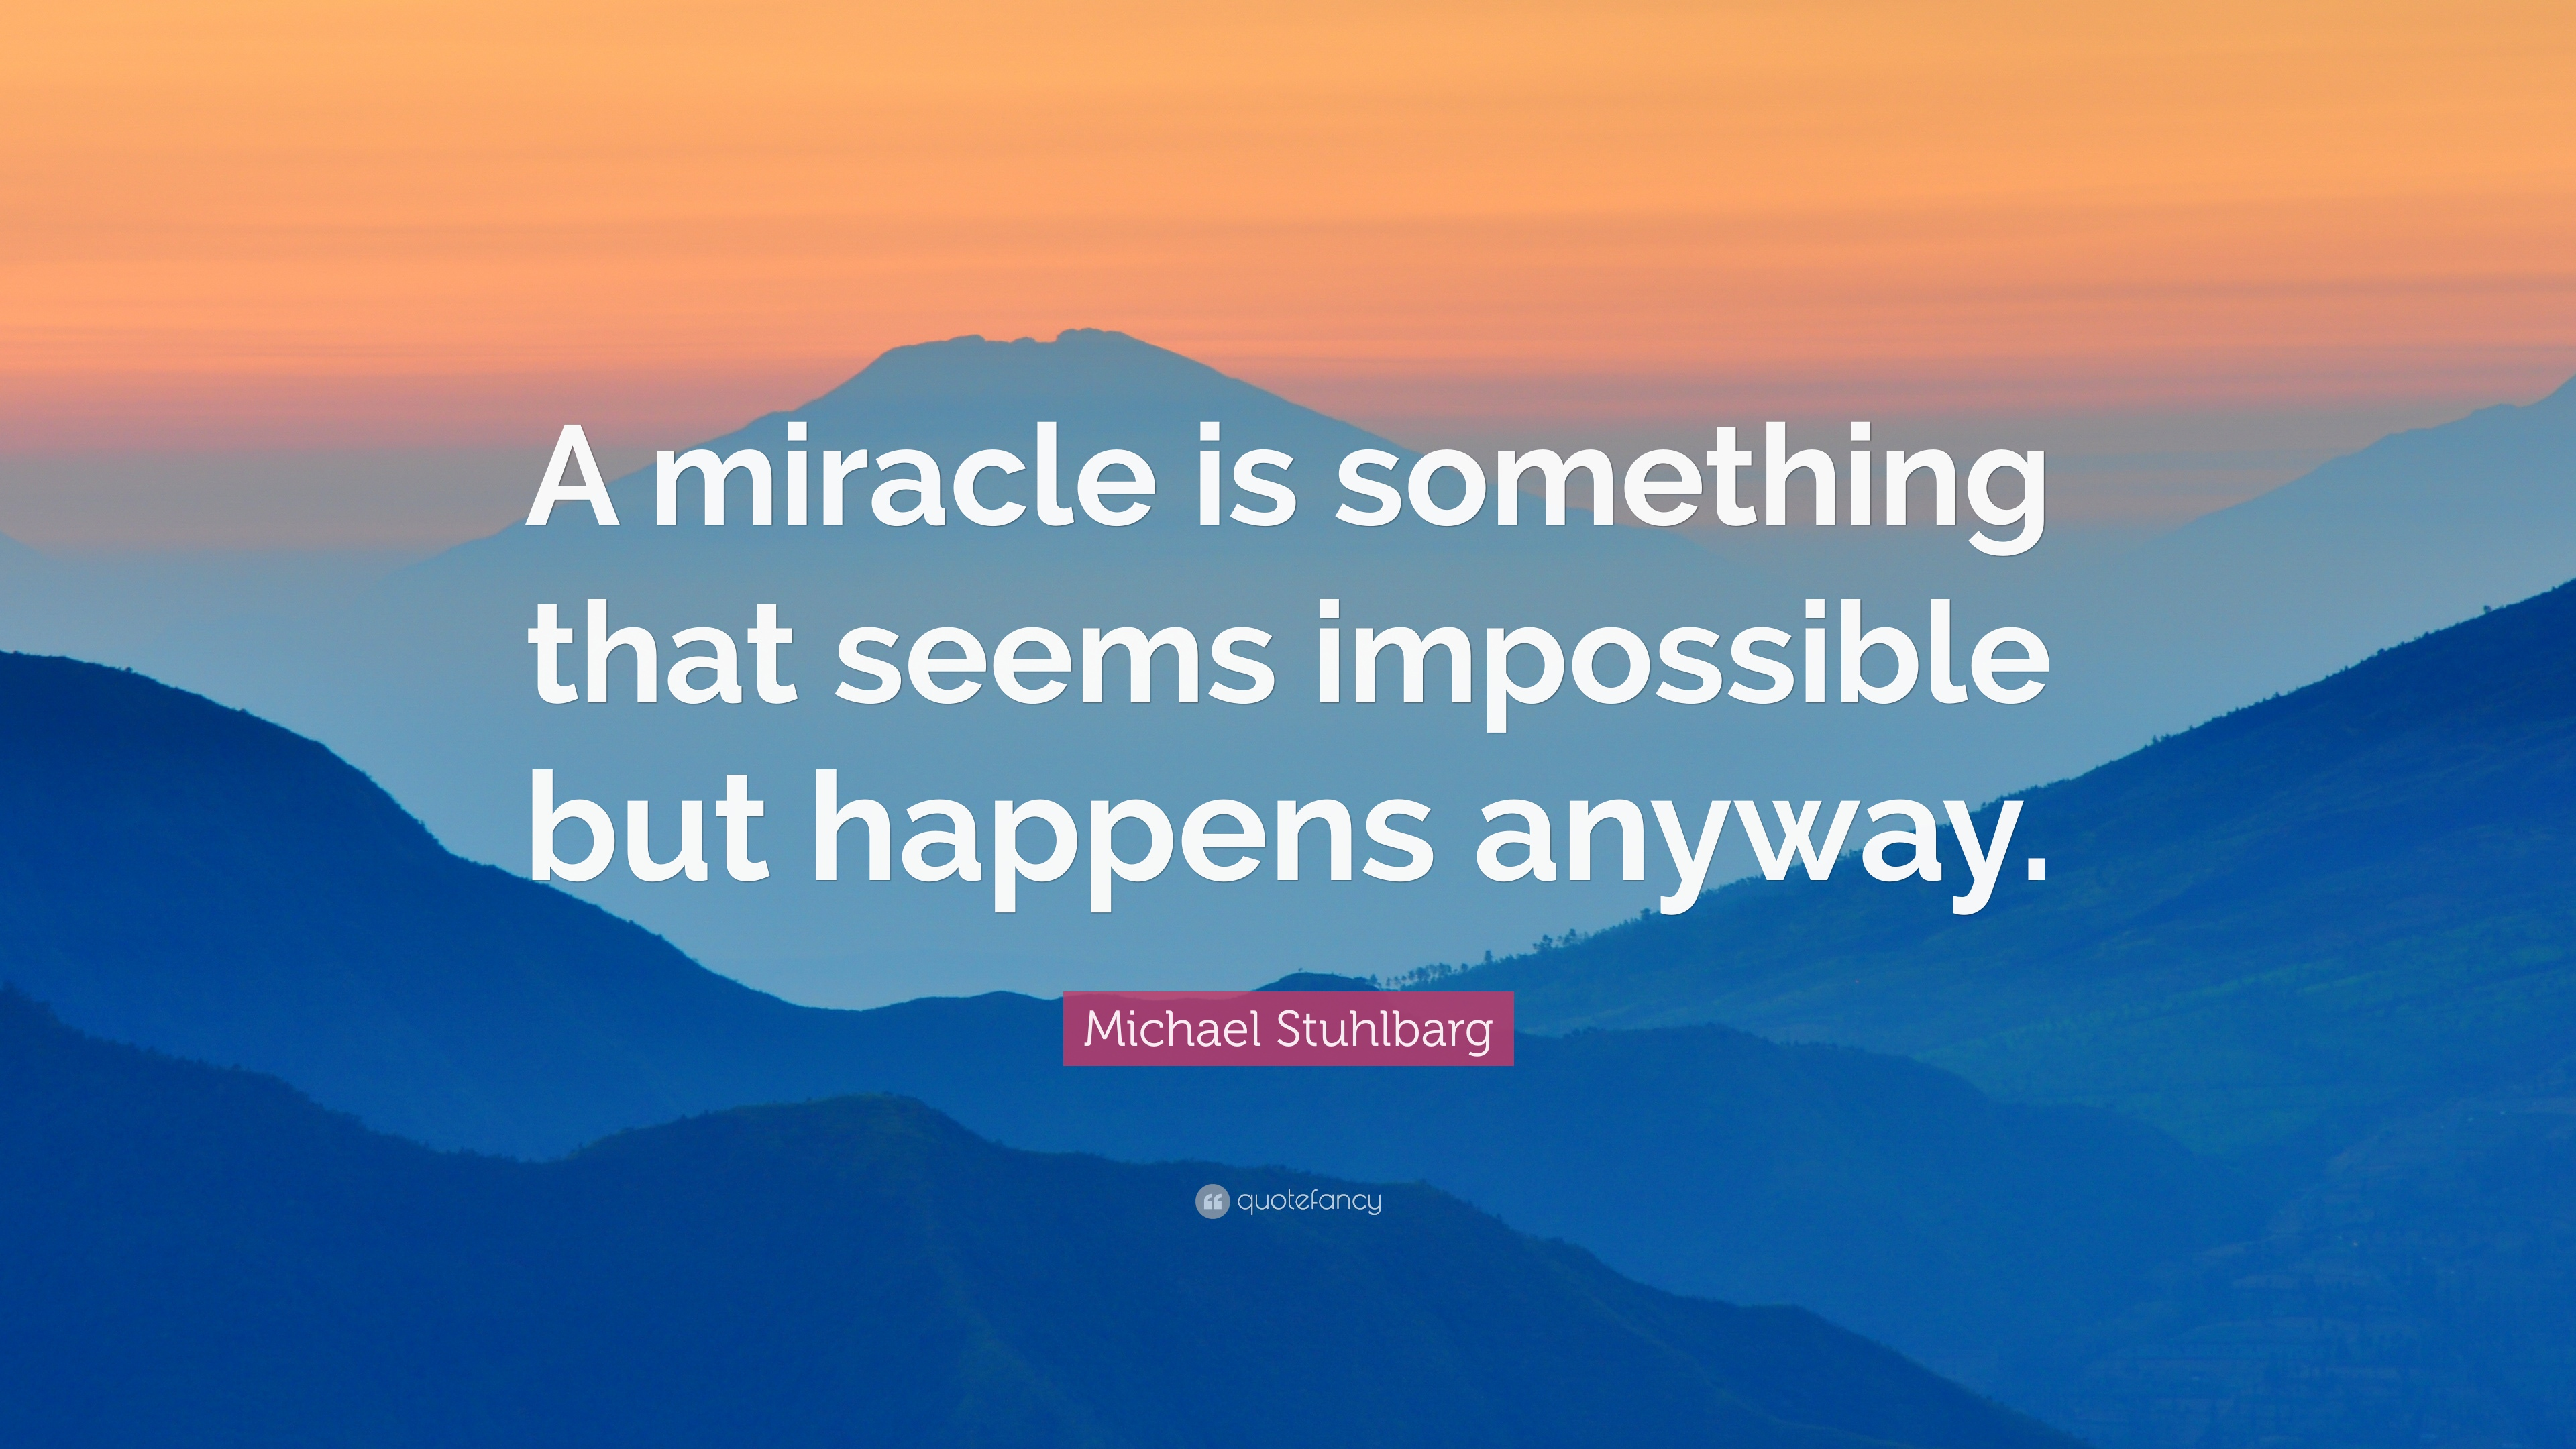 Michael Stuhlbarg Quote A Miracle Is Something That Seems Impossible But Happens Anyway